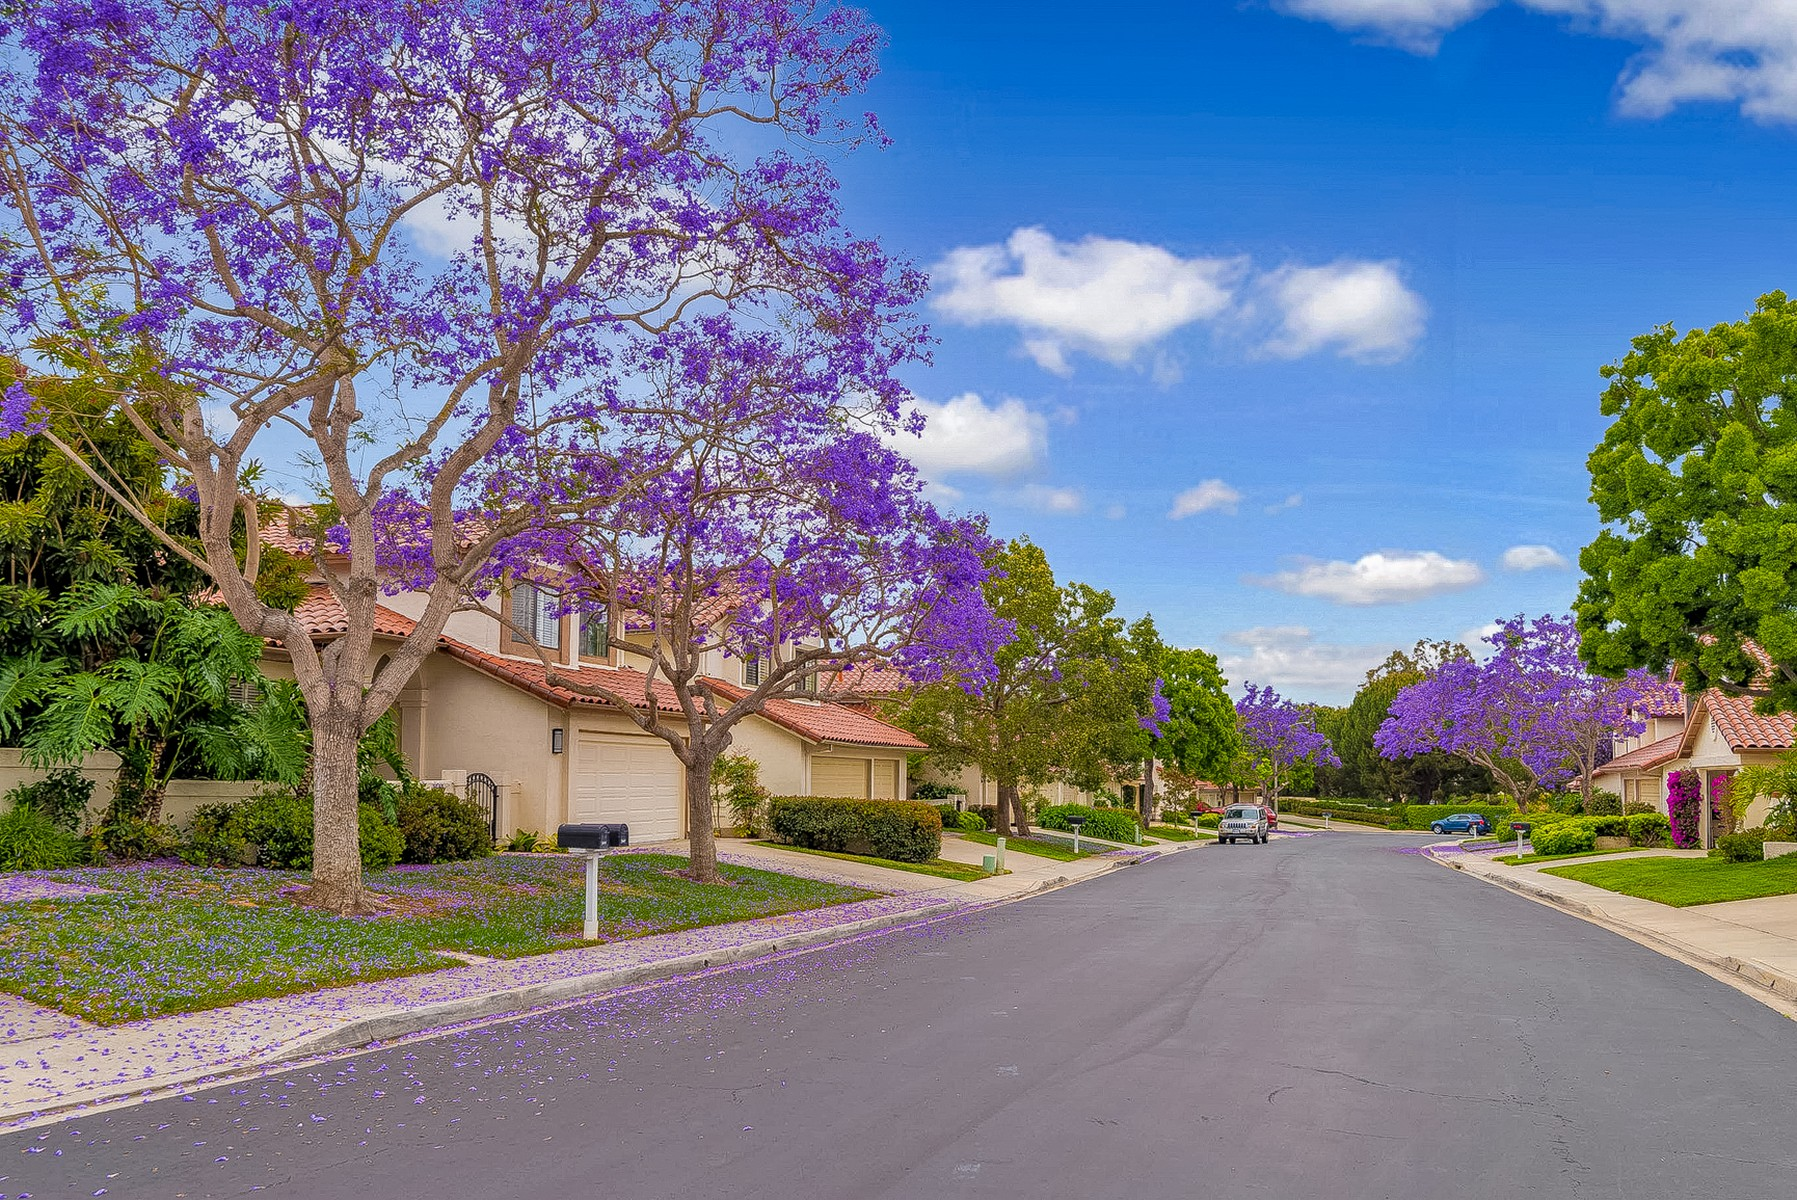 Single Family Home for Sale at 4026 Caminito Cassis San Diego, California, 92122 United States